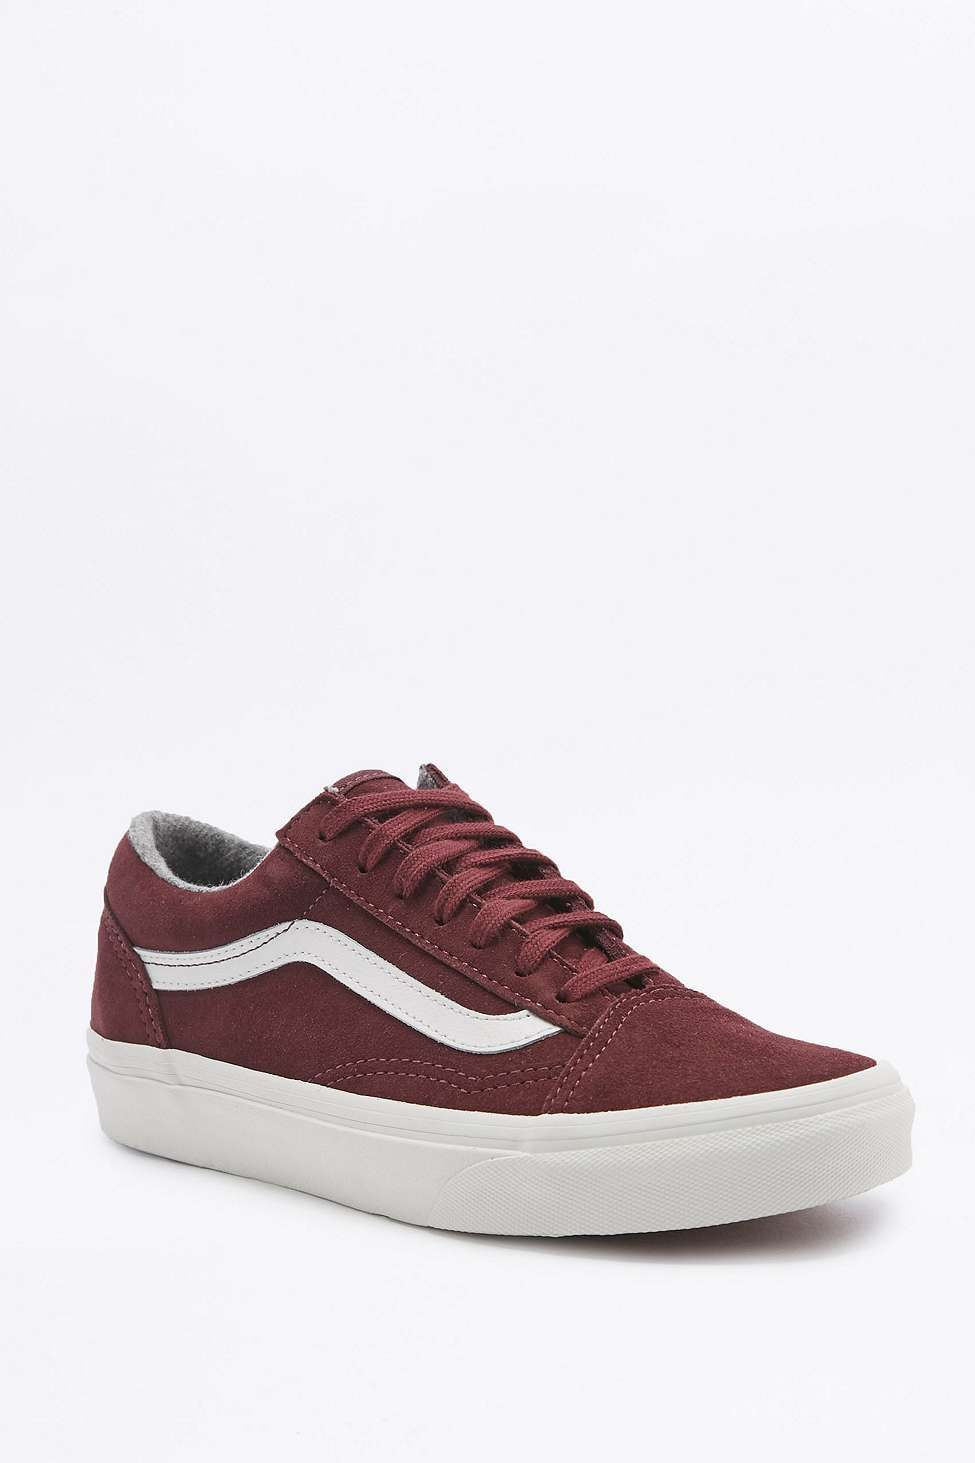 Vans - Baskets Old Skool bordeaux en daim | Vans old skool ...